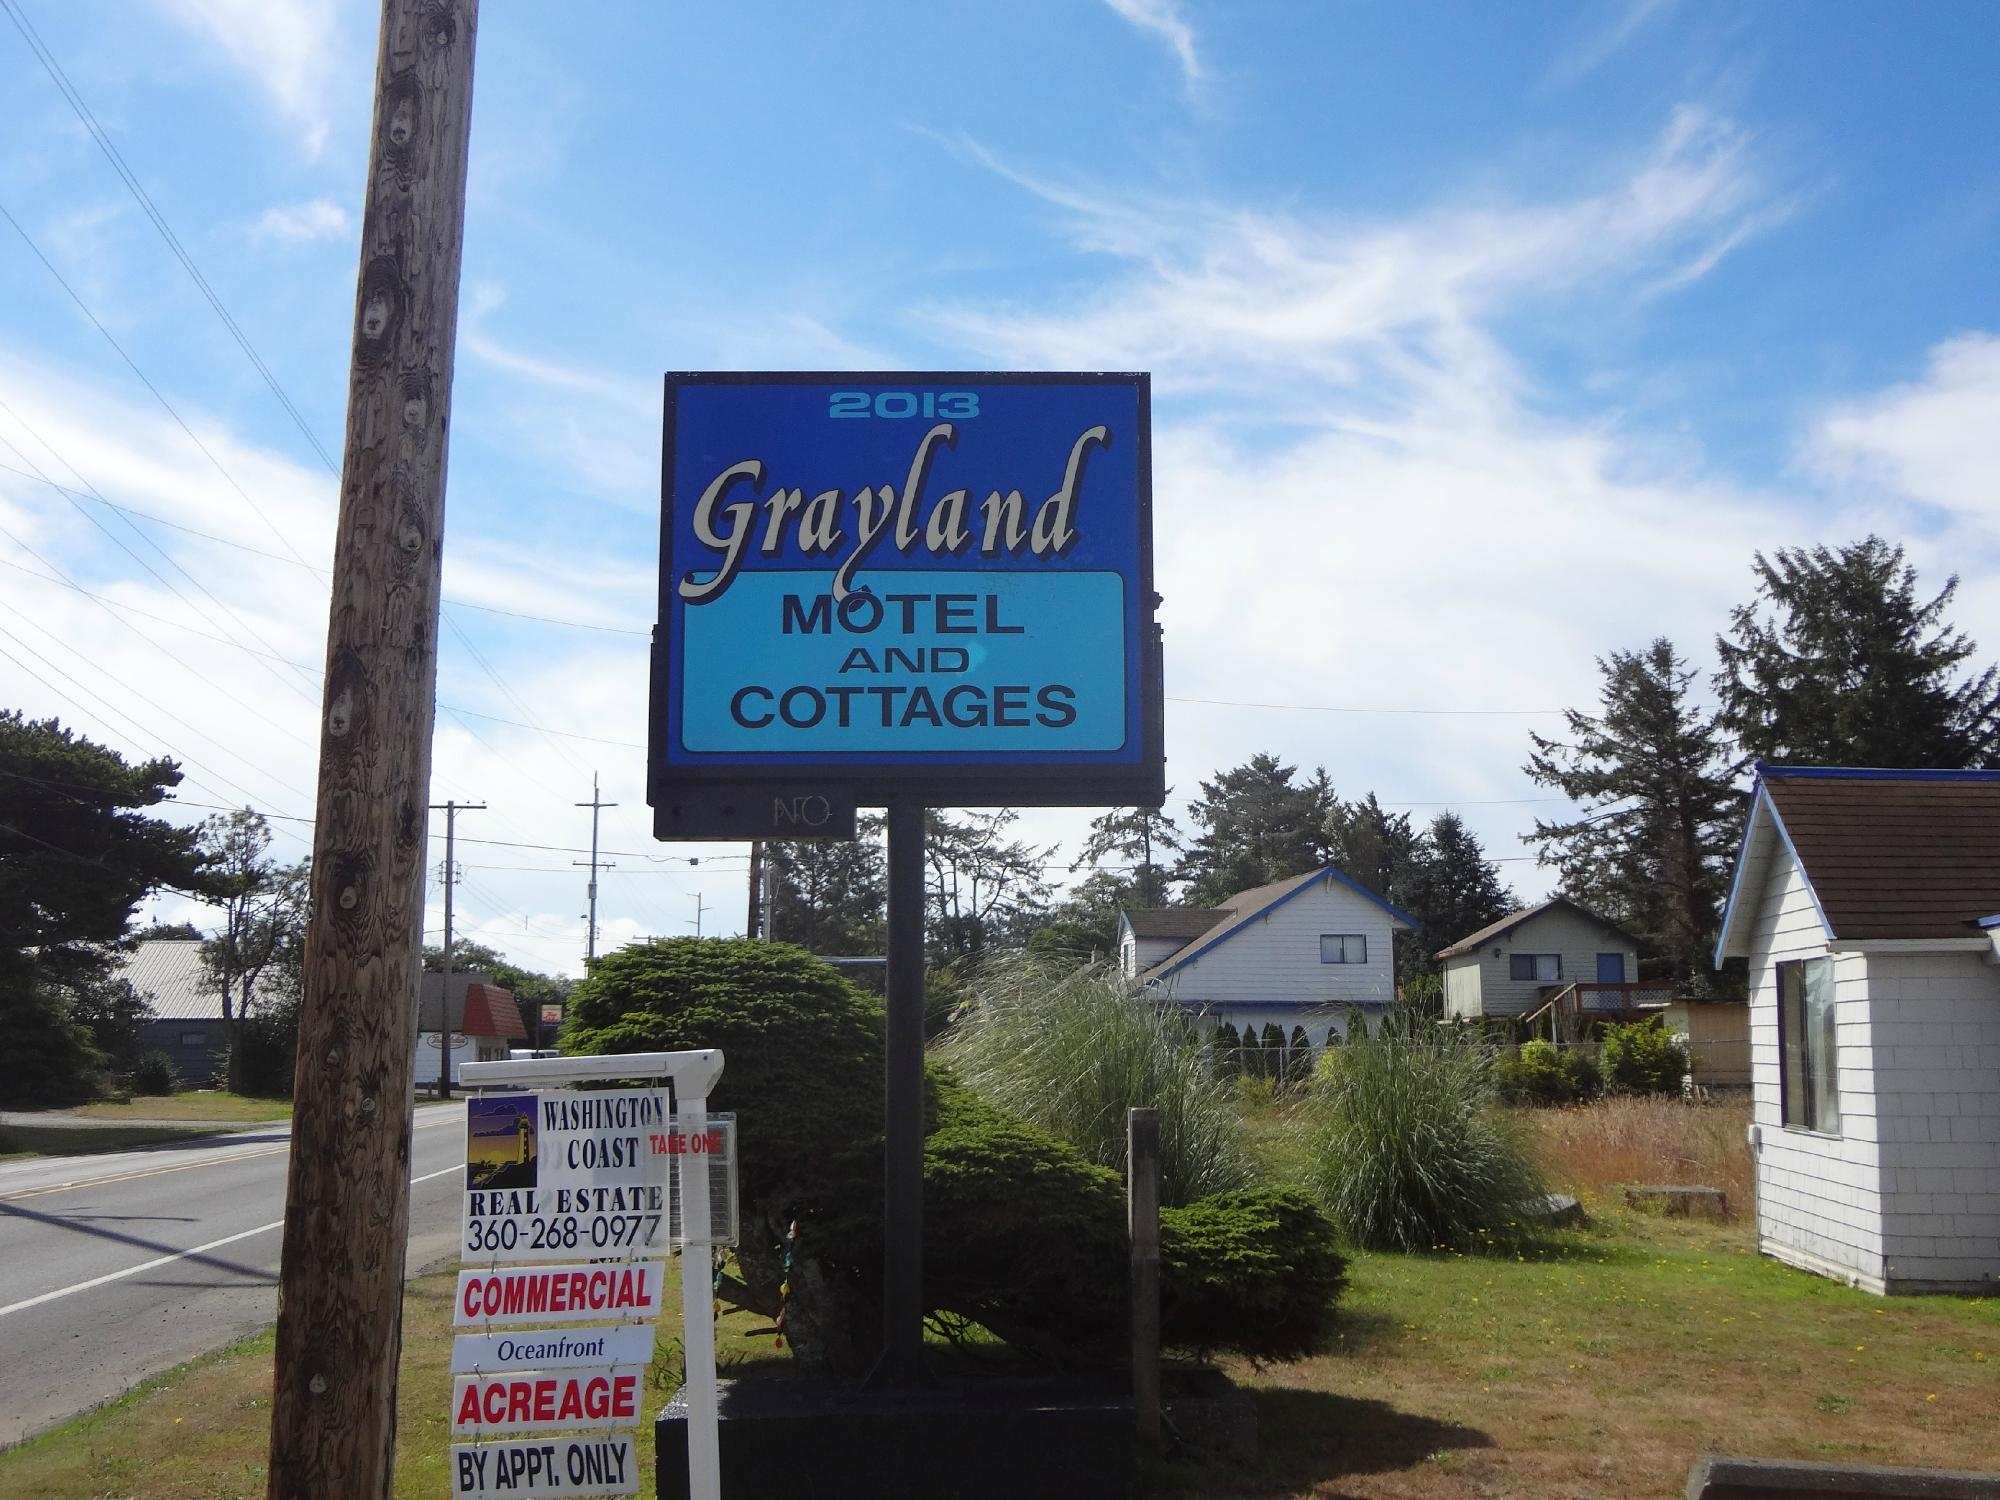 Grayland Motel and Cottages